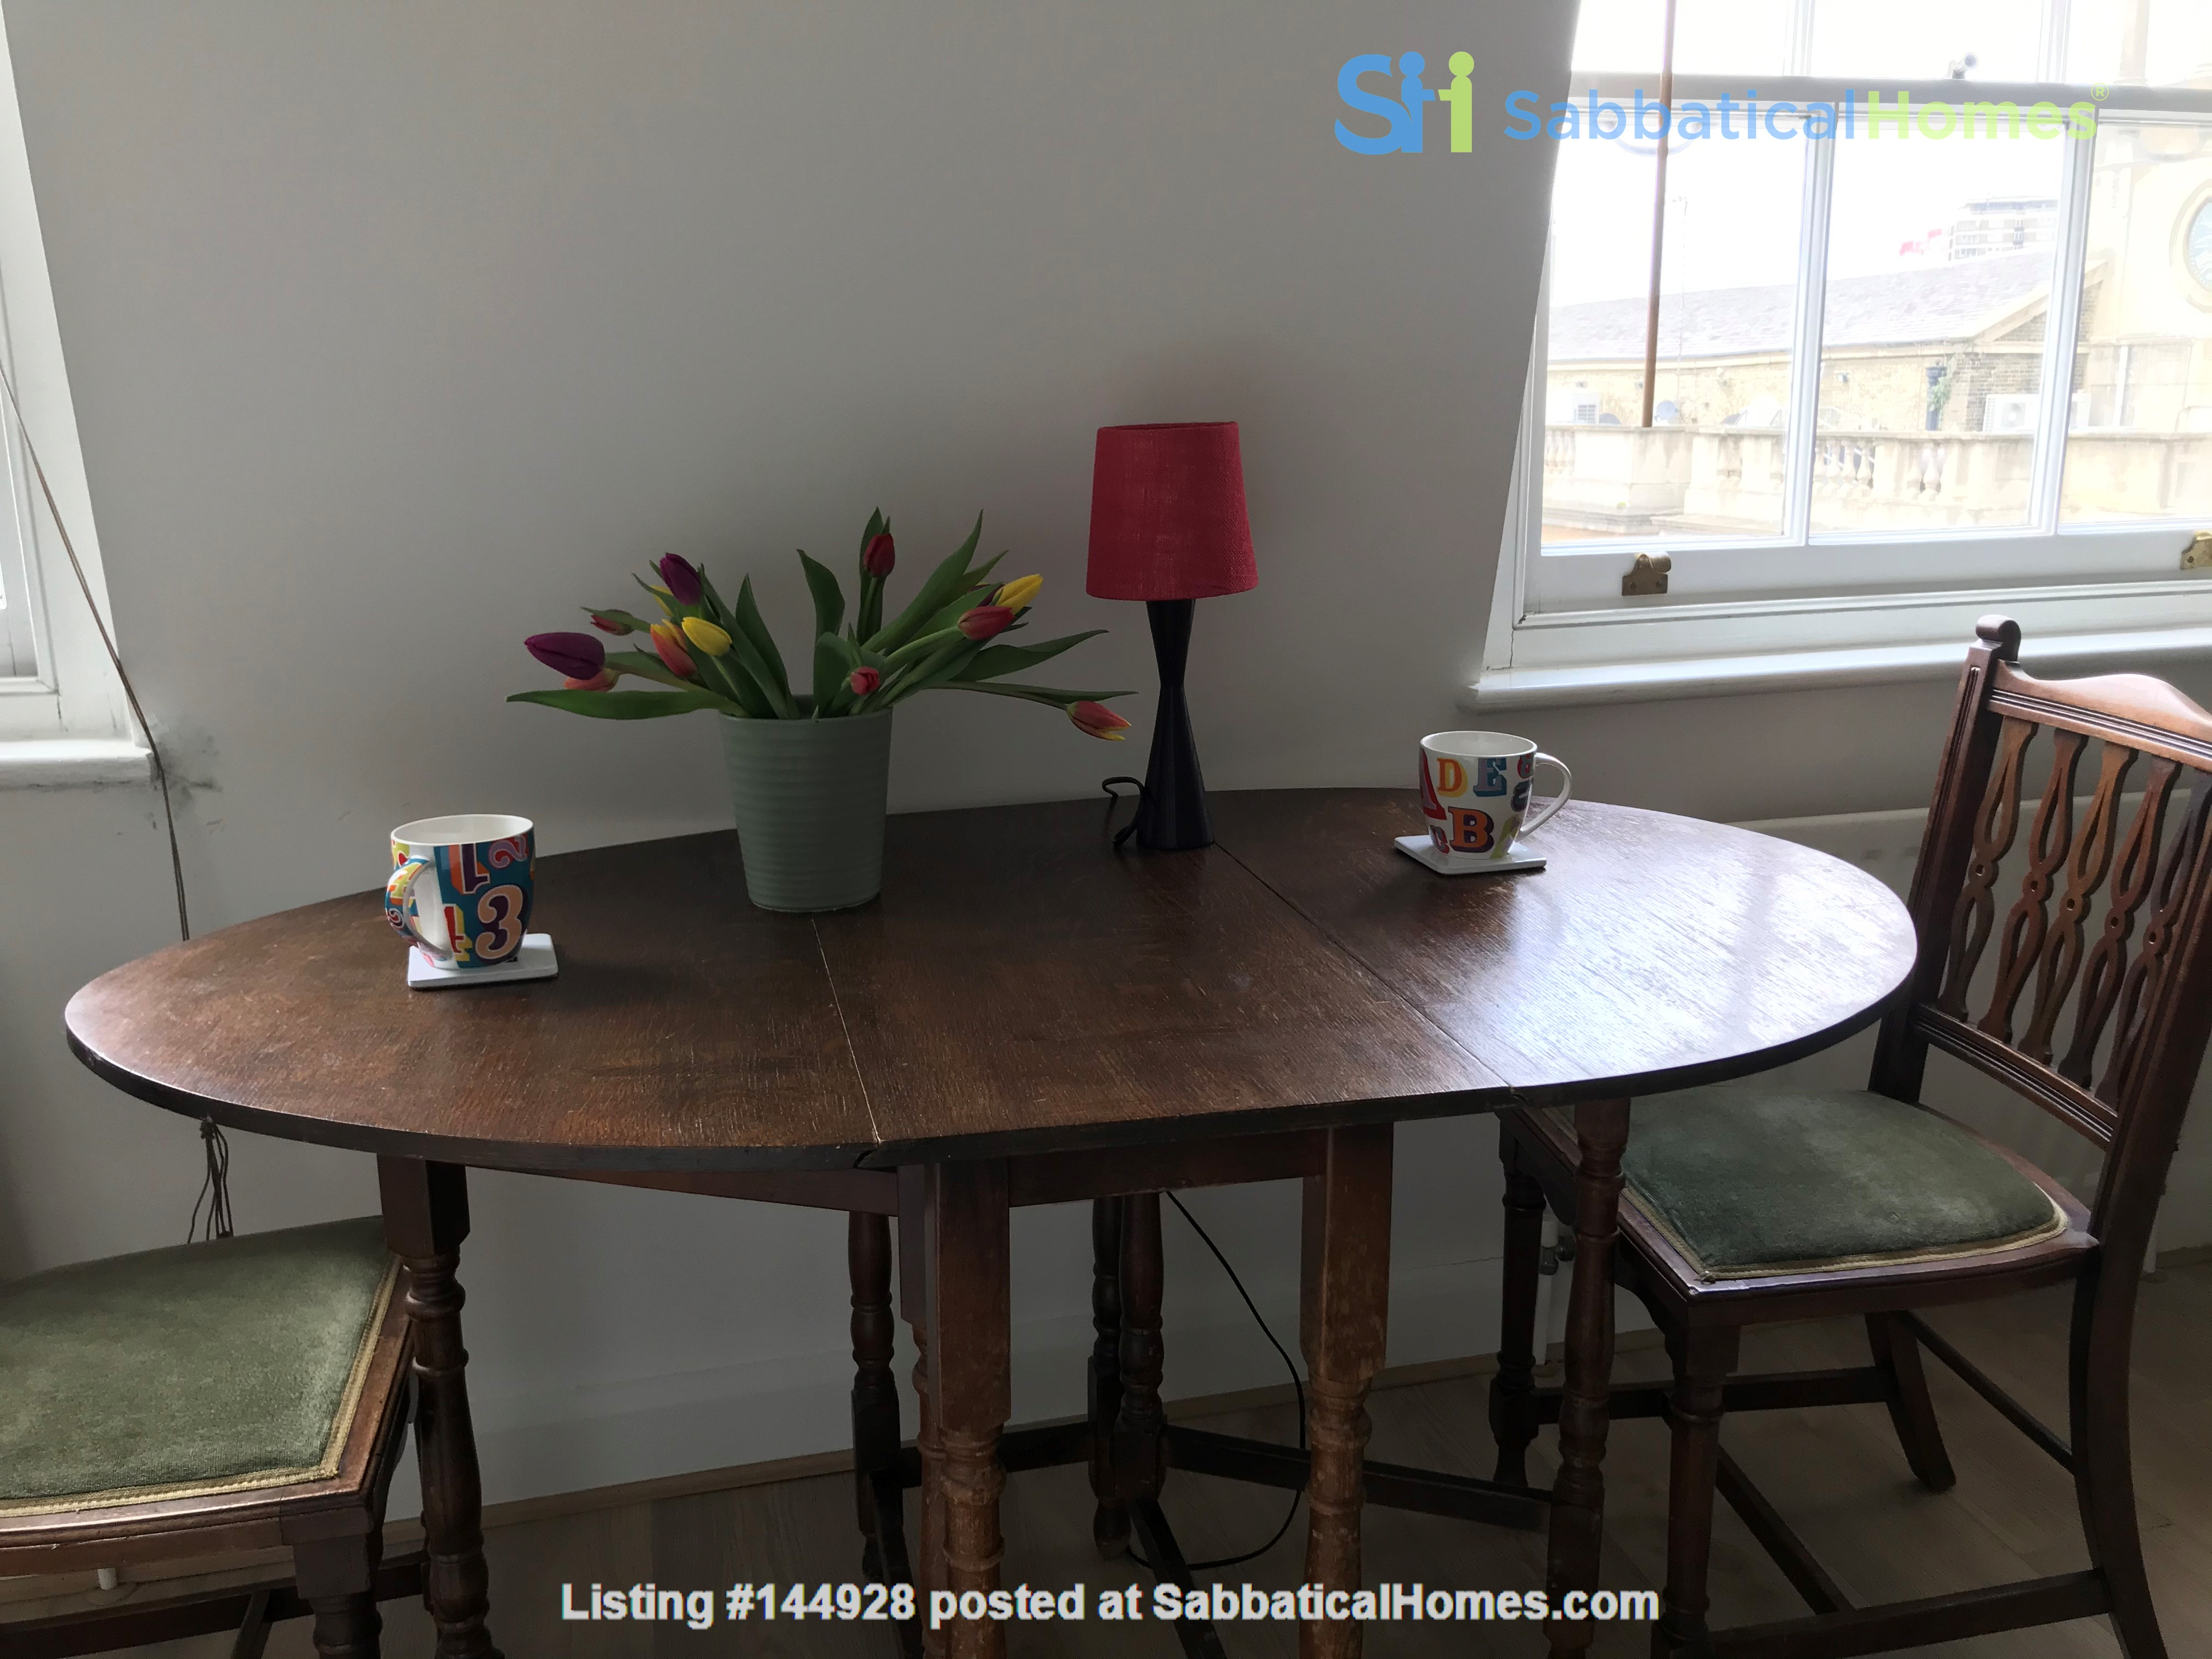 One bedroom, charming, central London flat in Cosway St, Marylebone, London Home Rental in Marylebone 7